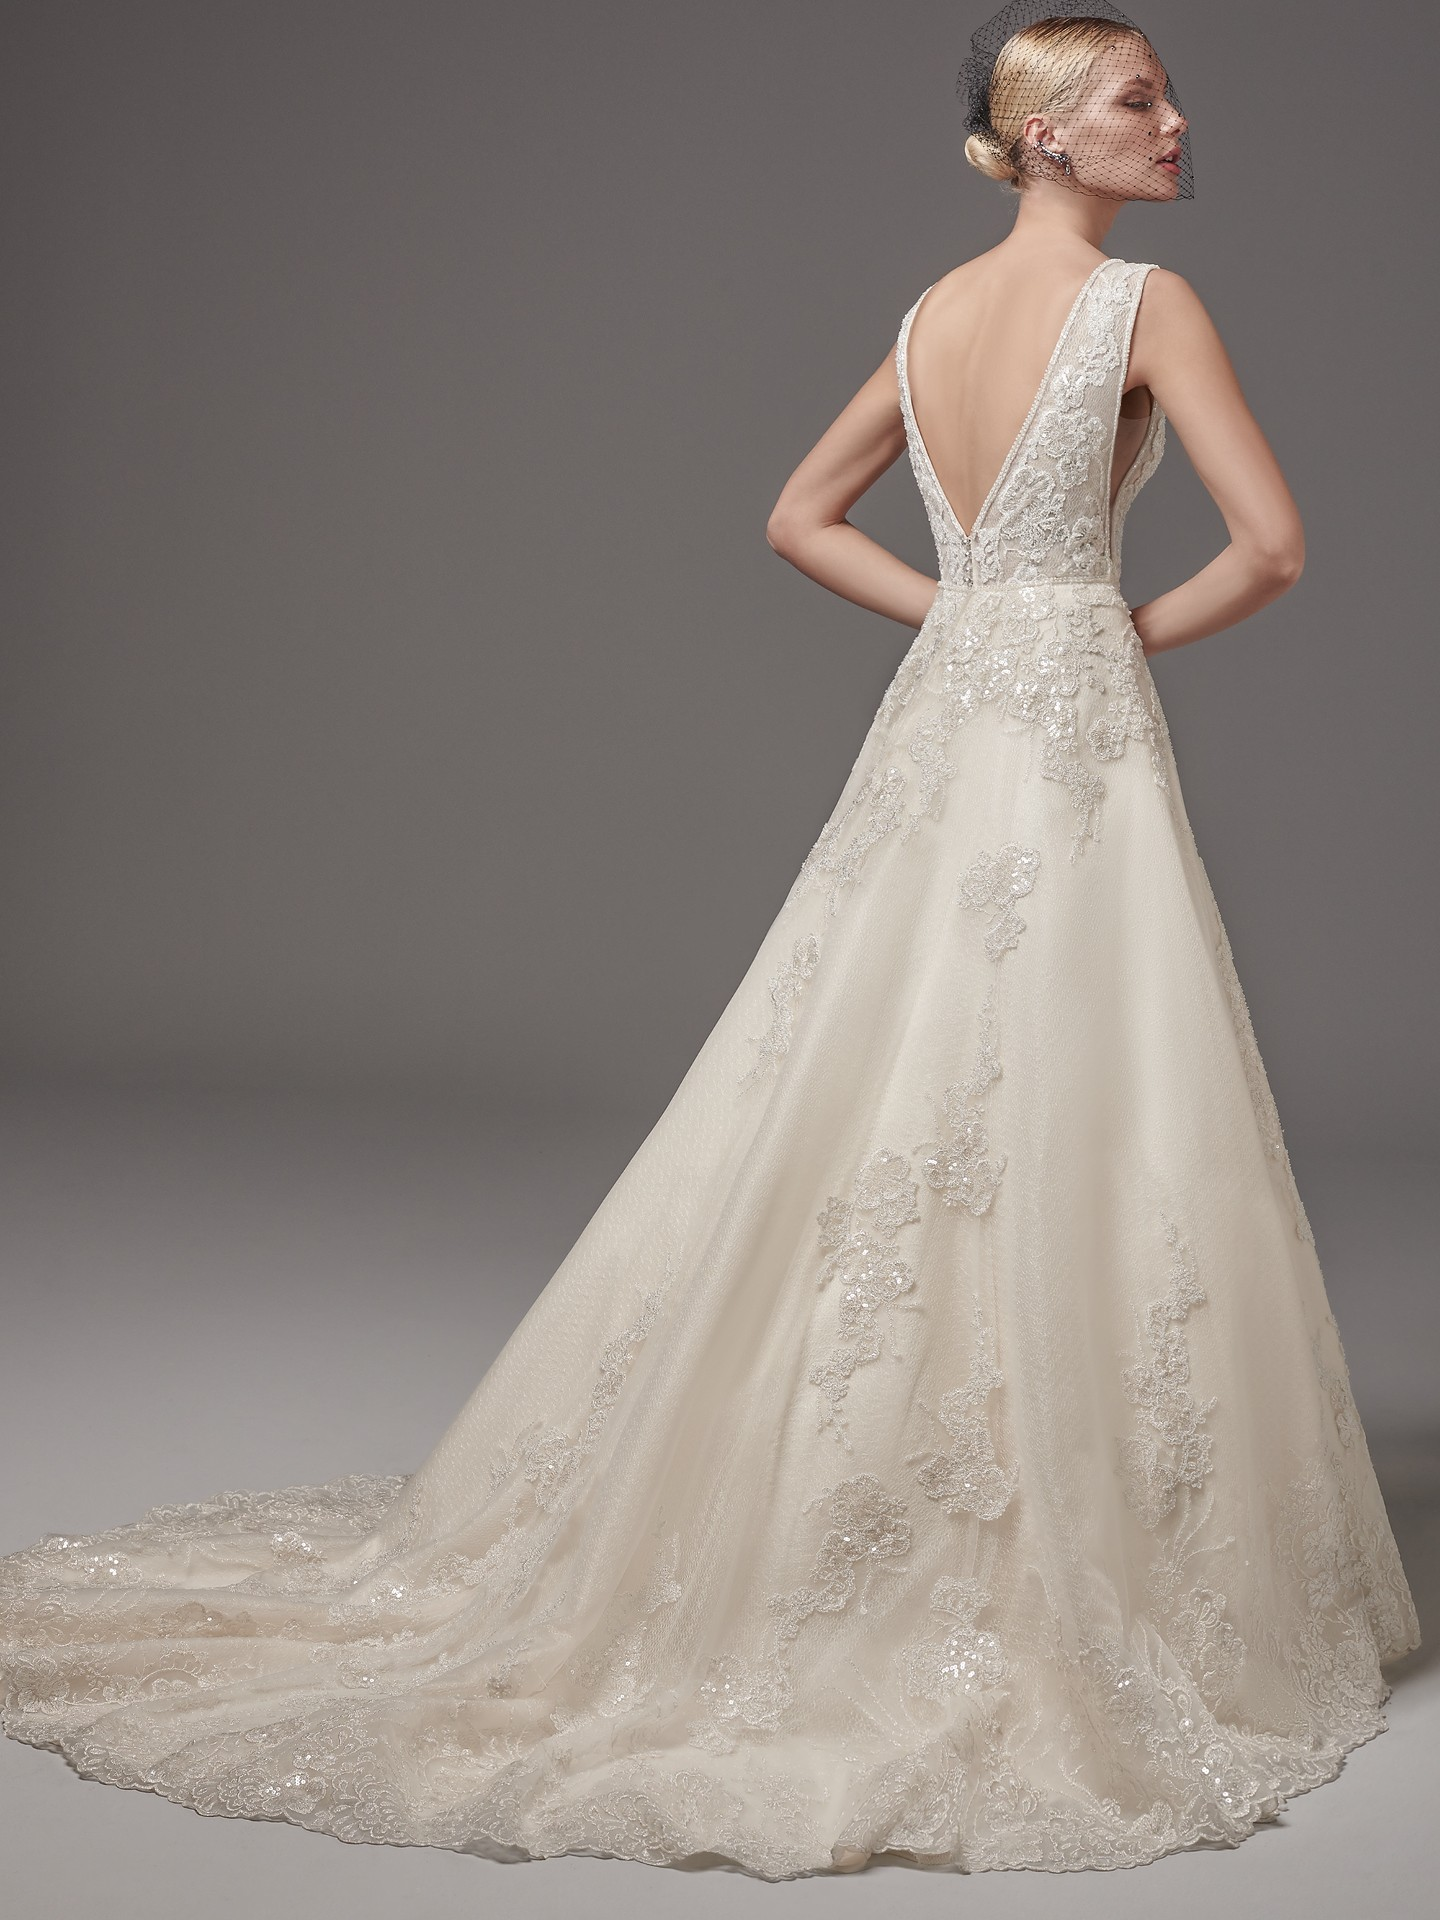 Champagne/Pewter Accent wedding dress by Sottero and Midgley. Colorful Wedding Dresses For The Bold Bride